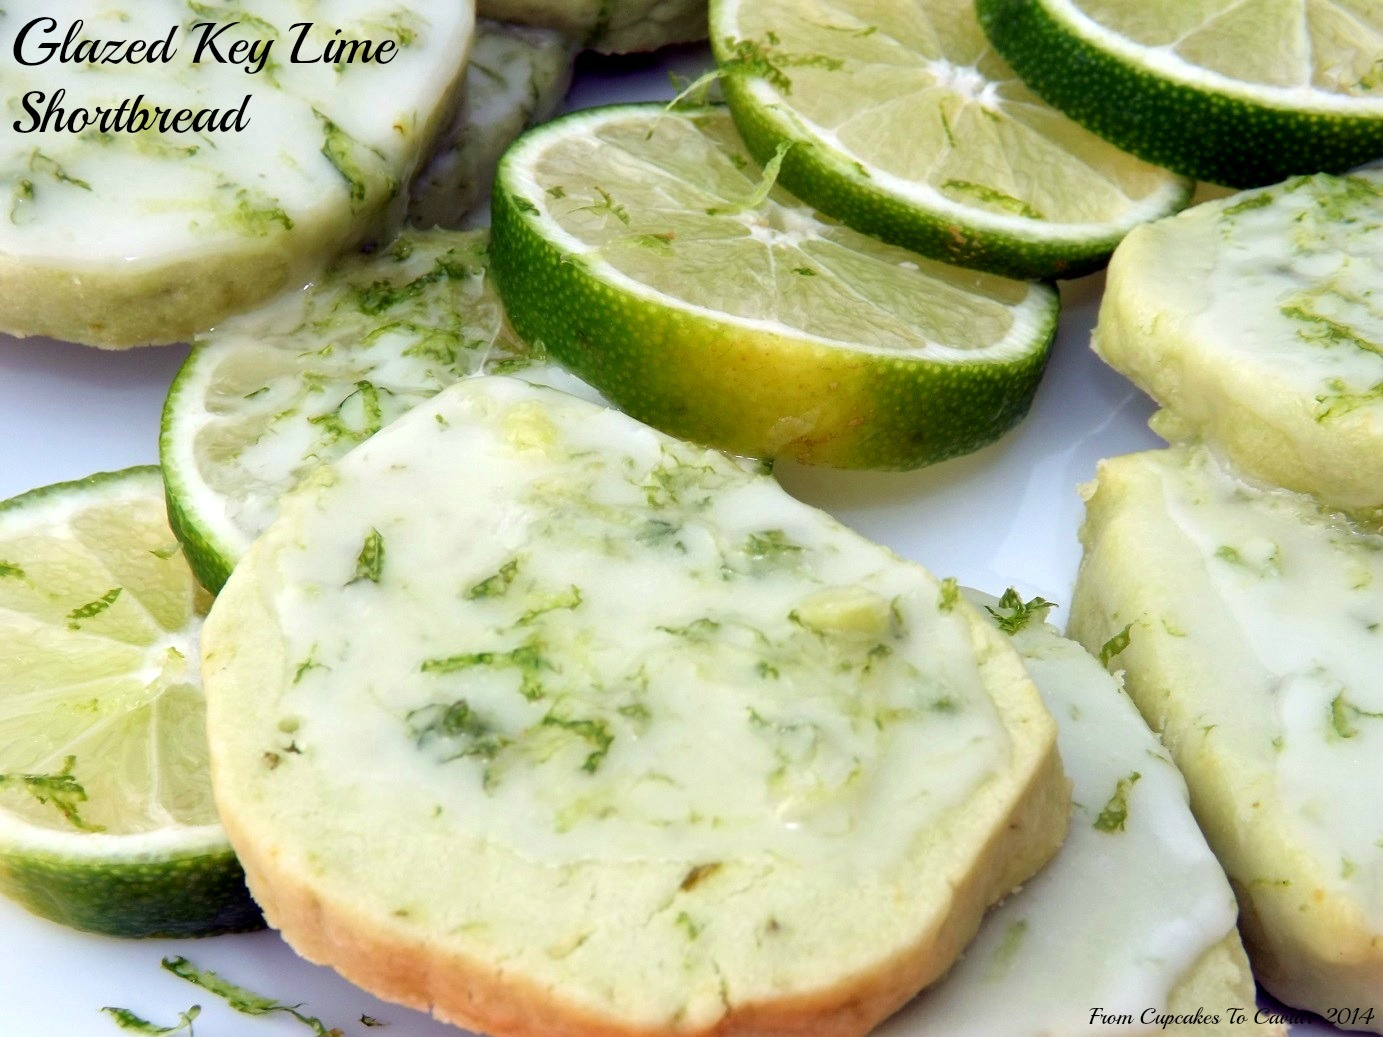 Glazed Key Lime Shortbread